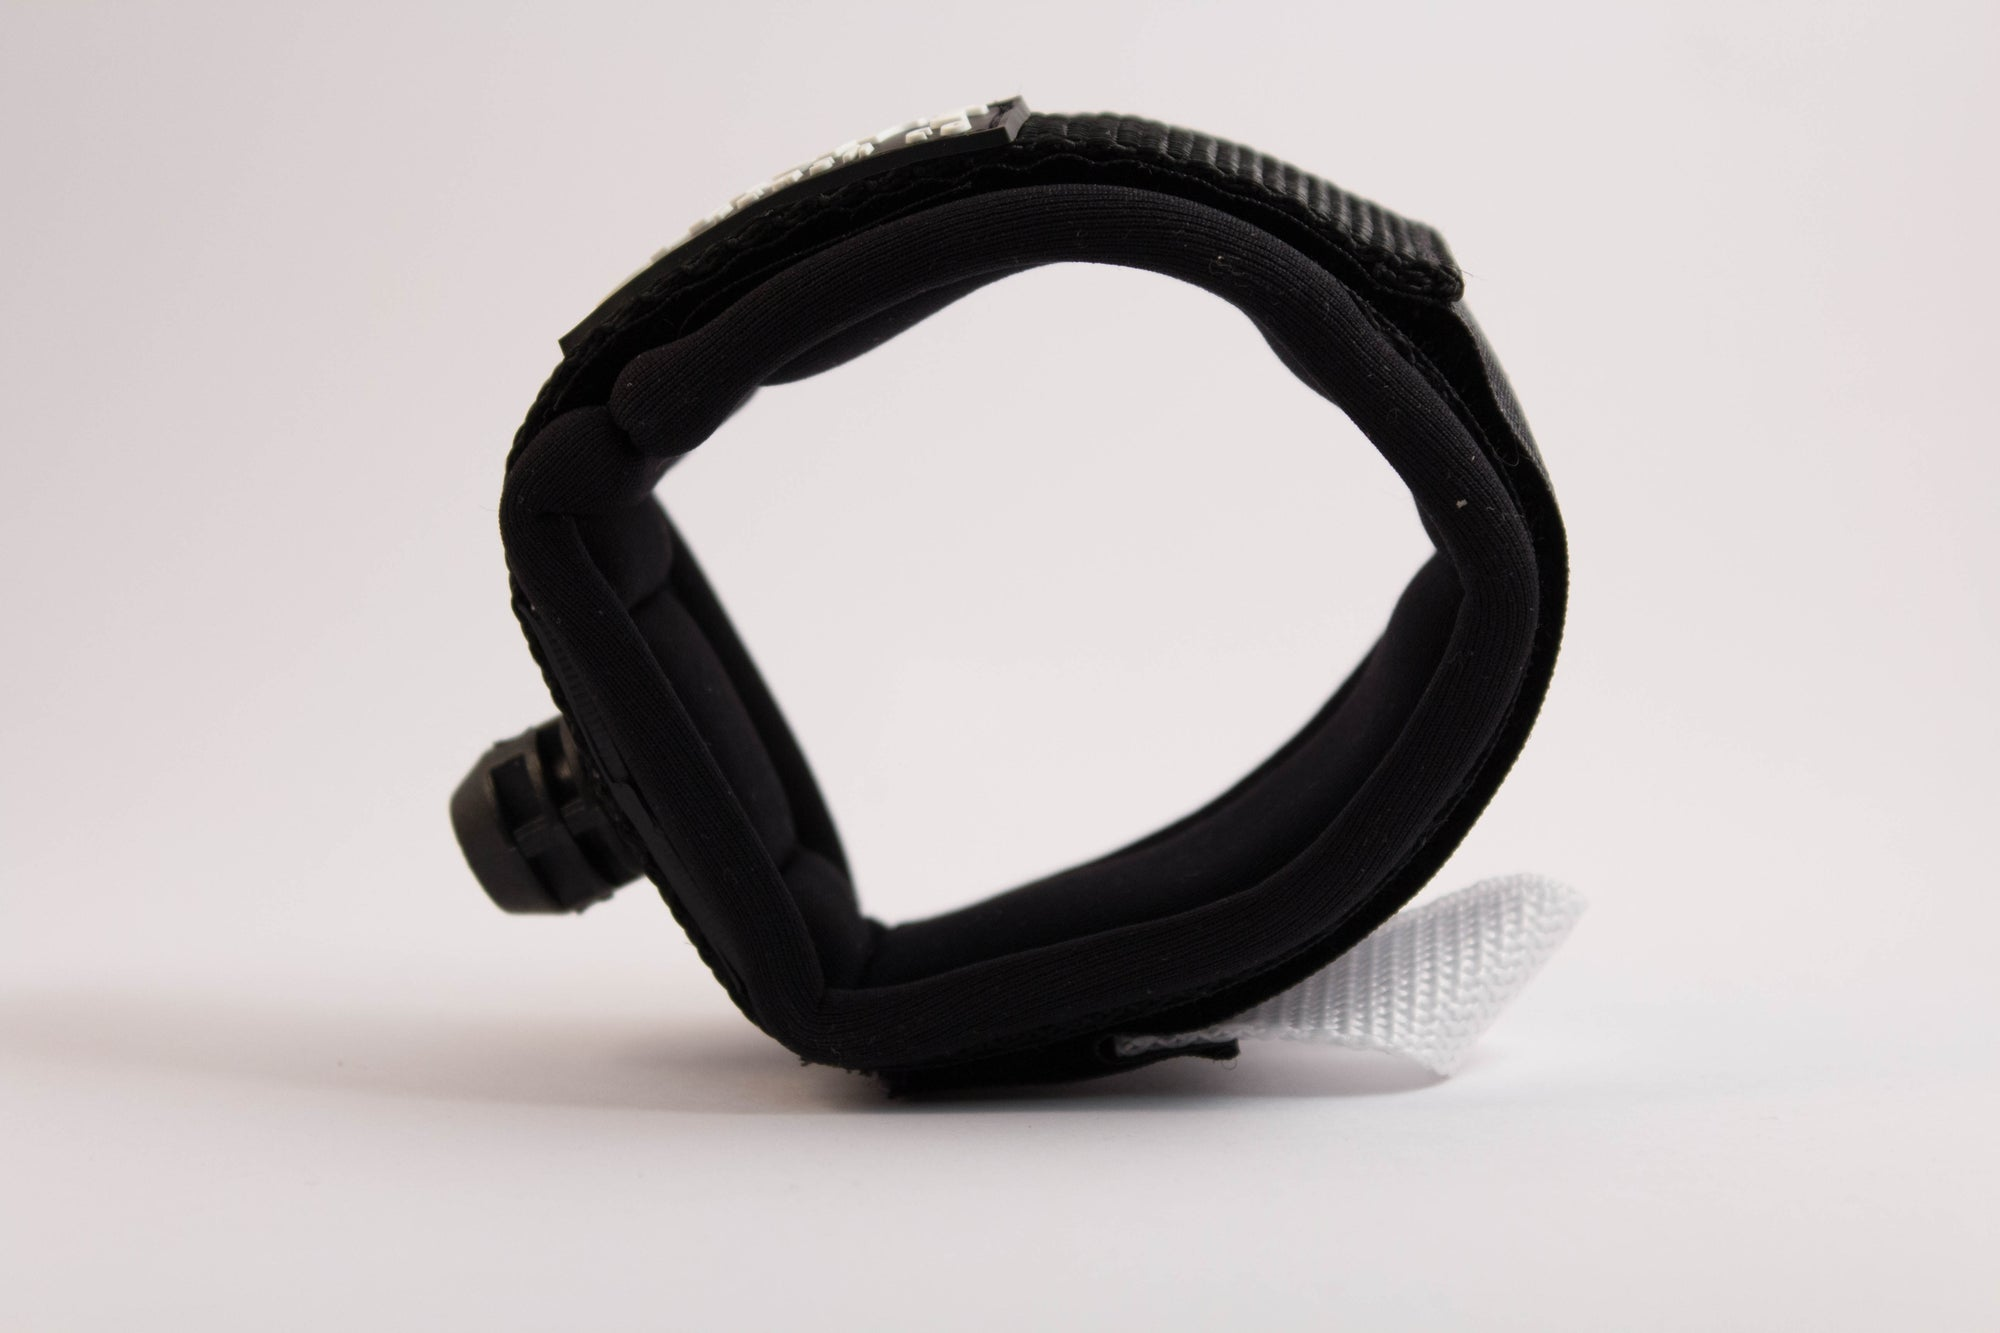 Ankle cuff by Smart Leash Co